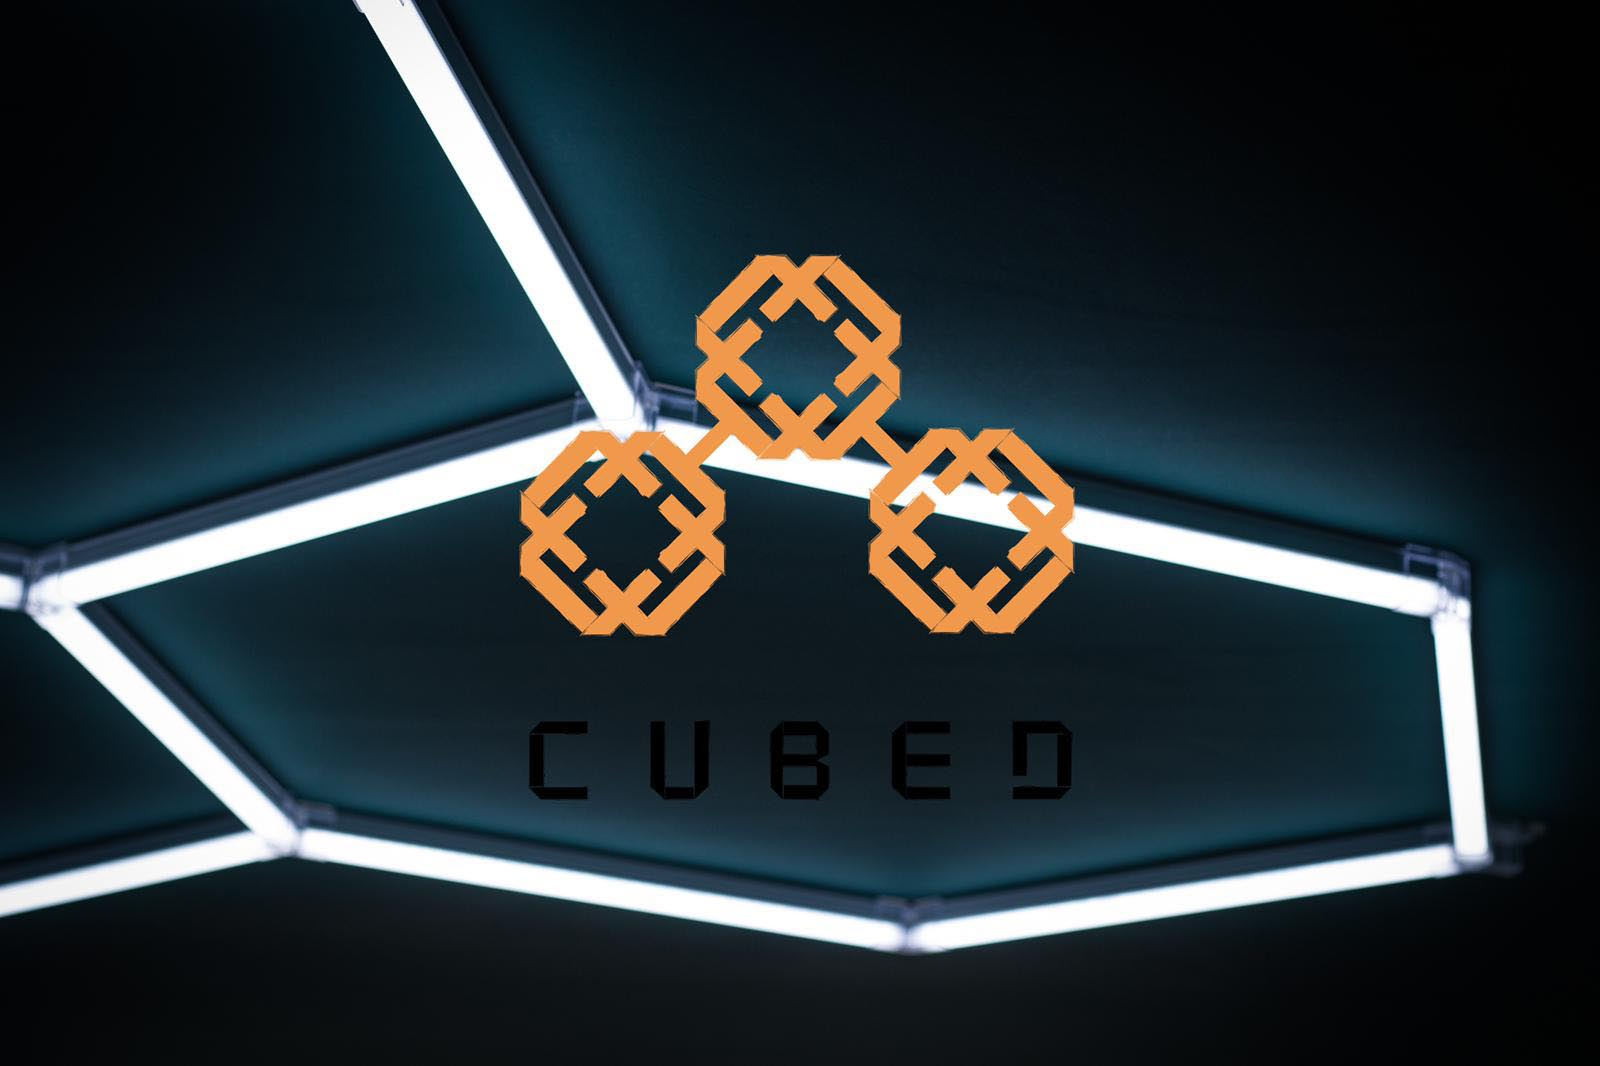 Starting a business from scratch podcast image. Cubed Cuts and coffee logo overlaid on a hexagonal light feature in the shop.